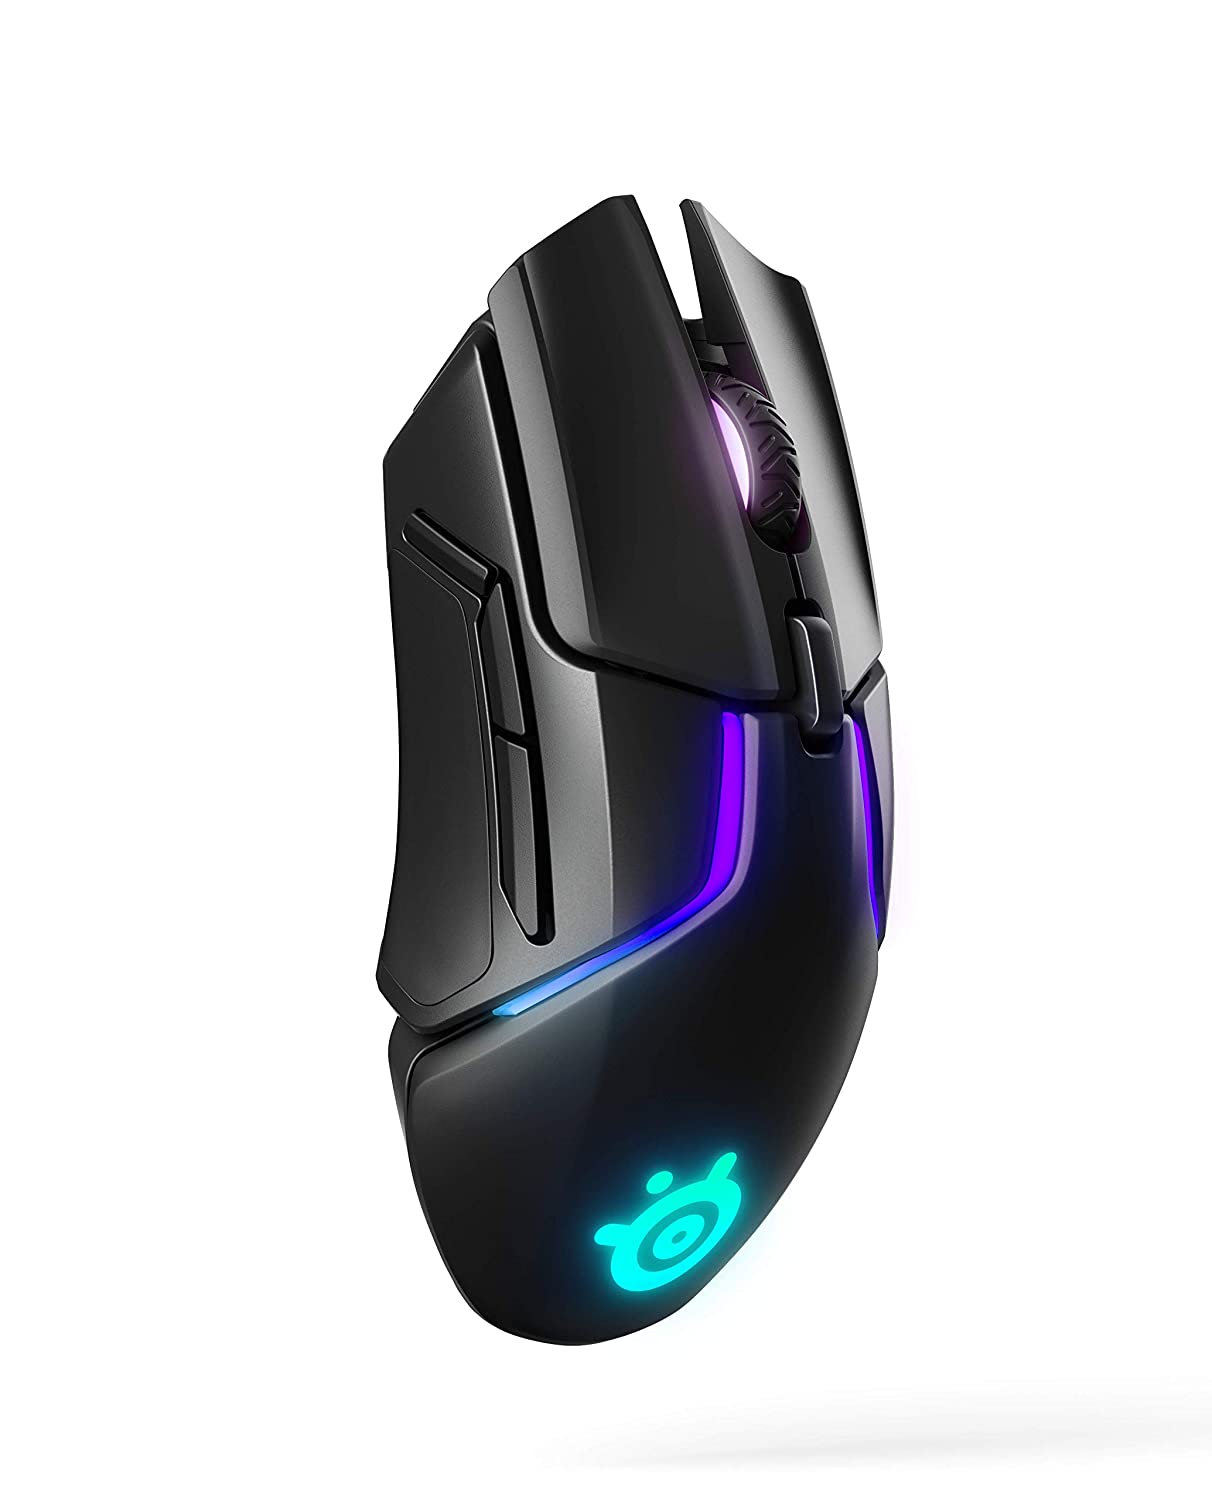 SteelSeries Rival 650 Quantum Wireless Gaming Mouse - Rapid Charging Battery - 12,000 CPI TrueMove3+ Dual Optical Sensor - Low 0.5 Lift-off Distance - 256 Weight Configurations - 8 Zone RGB Lighting